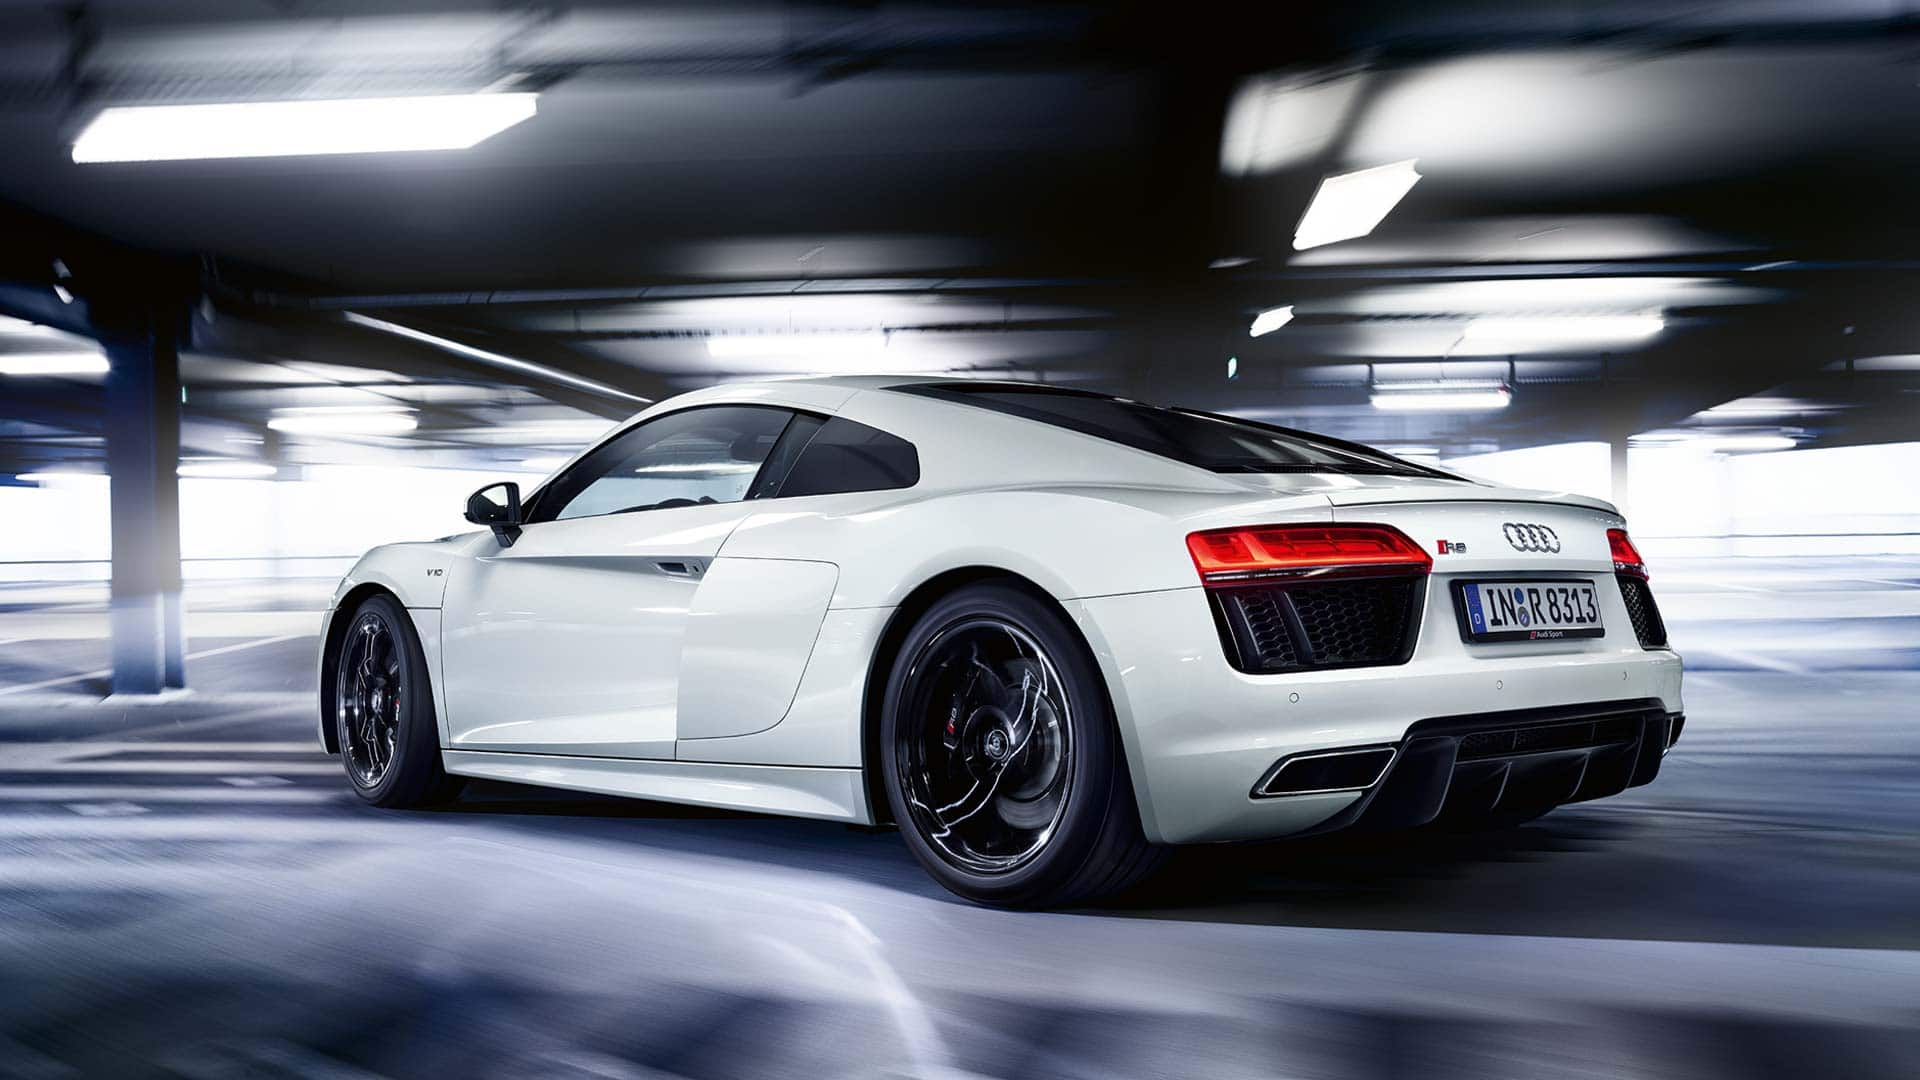 All Wheel Drive Cars >> Audi R8 RWS | Limited Edition | Audi Australia > R8 > Audi Australia Official Website | Luxury ...